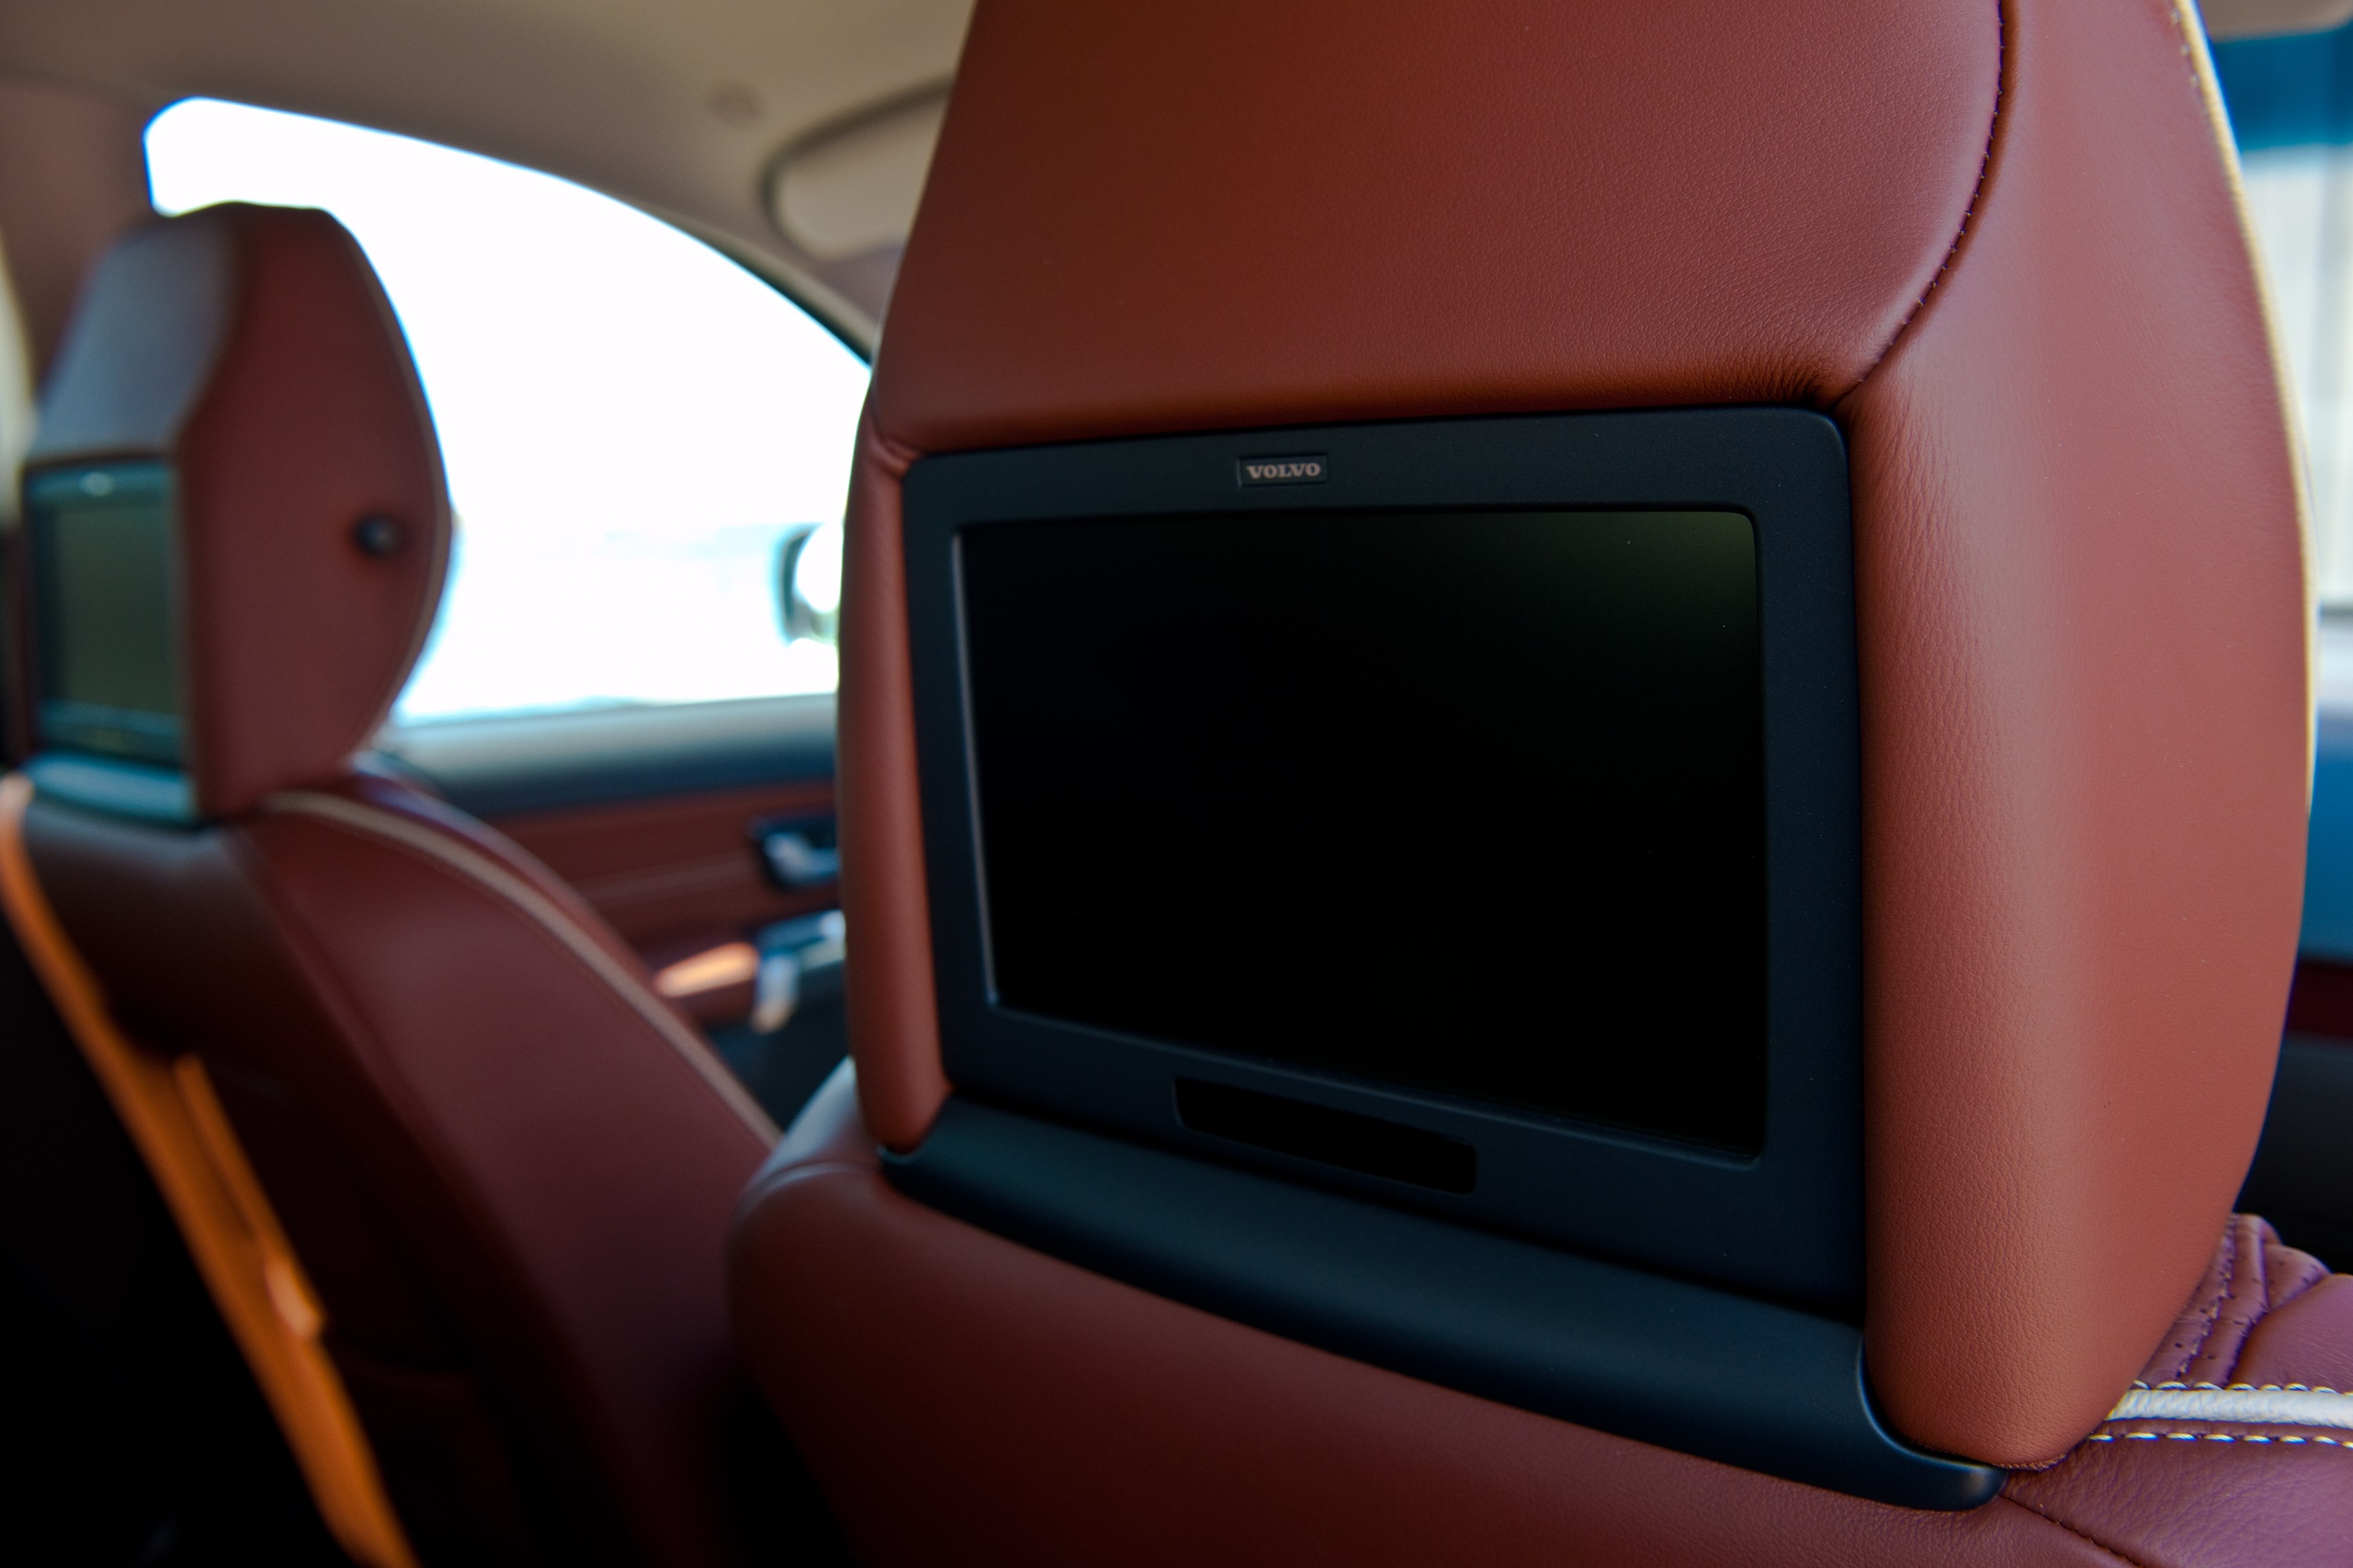 823 2012 Volvo Xc9017 besides Interieur photo Volvo XC90 image 12 as well 16 also Wallpaper 29 in addition Innen Armatur V70 I203312963. on volvo xc90